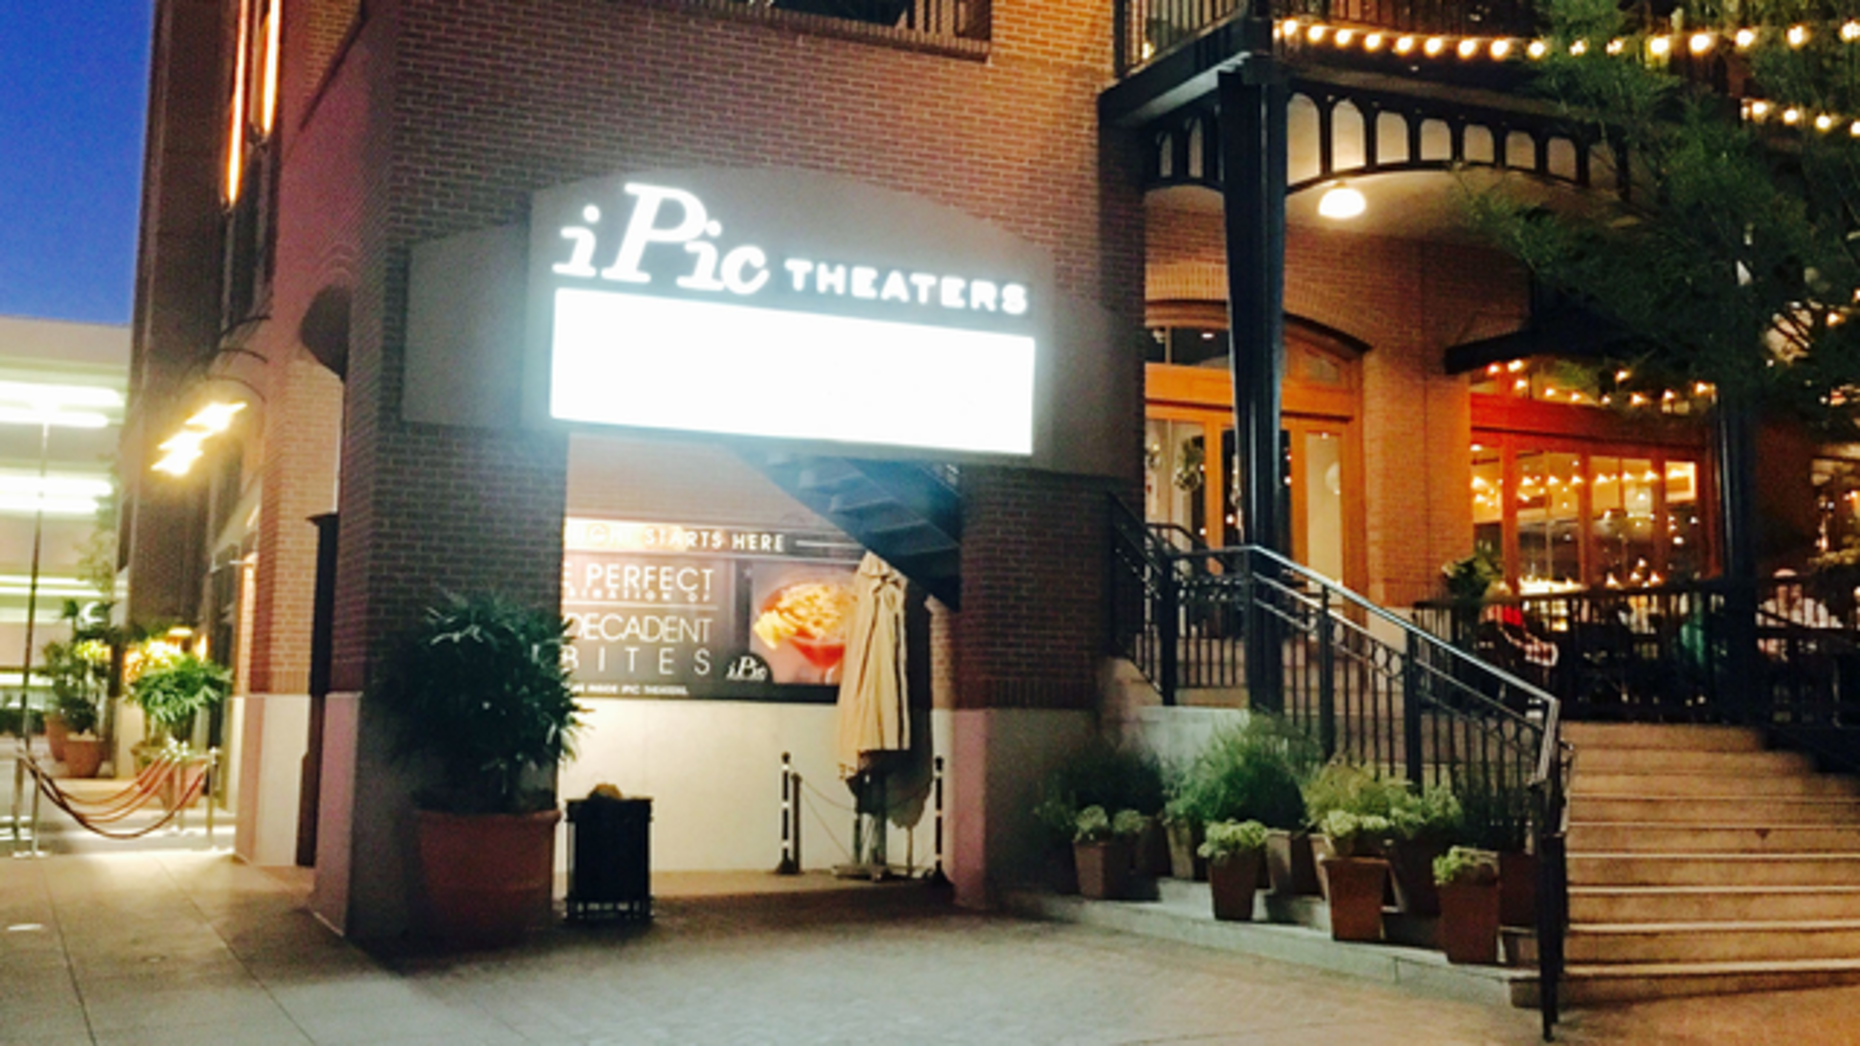 An iPic theater in Pasadena, Calif. Photo by JoVe DX/ Flickr